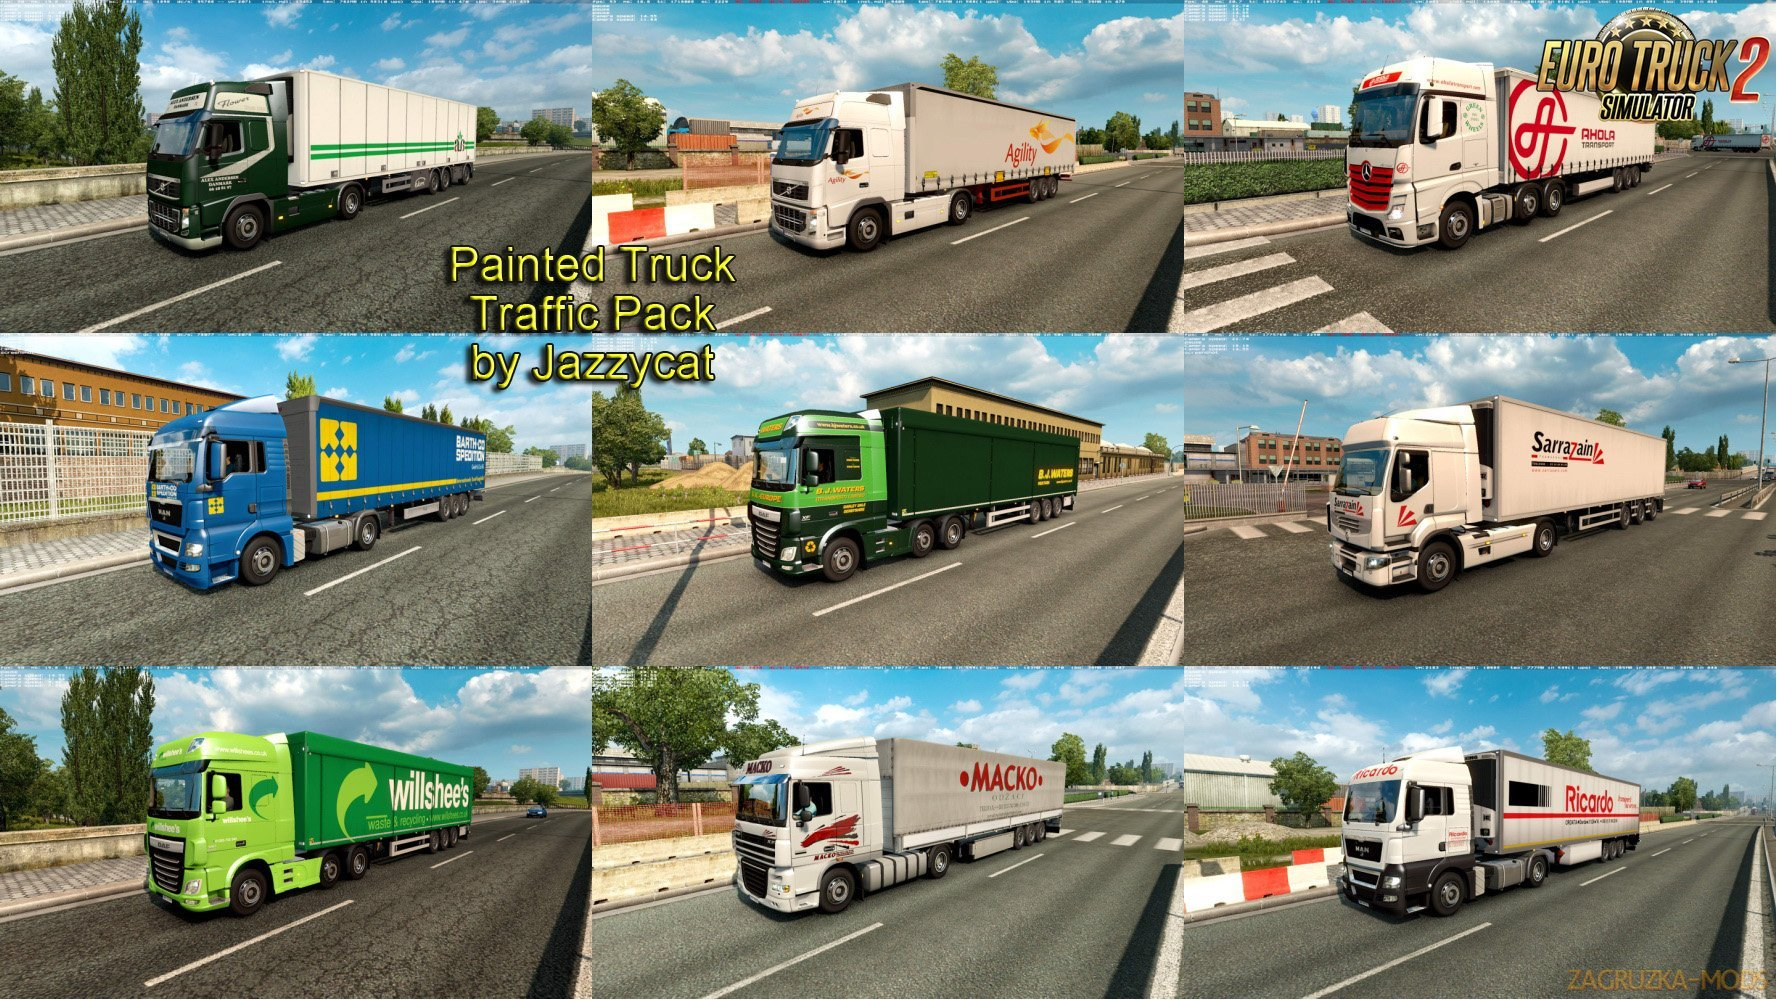 Painted Truck Traffic Pack v 4.5 by Jazzycat